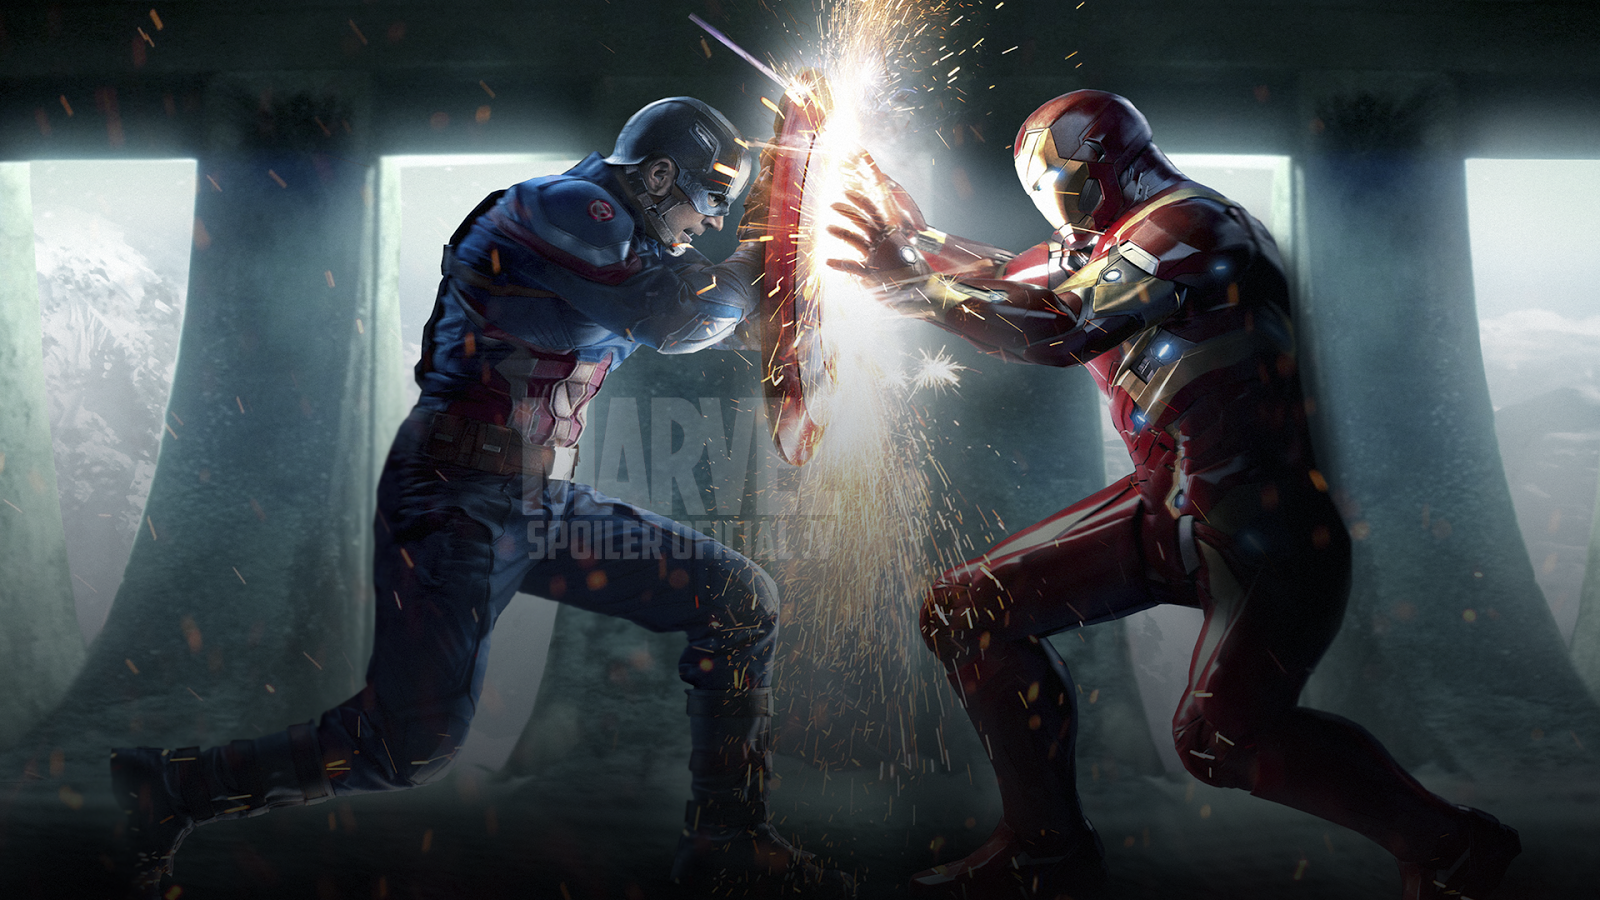 Captain America Civil War Wallpaper Posted By Ethan Anderson